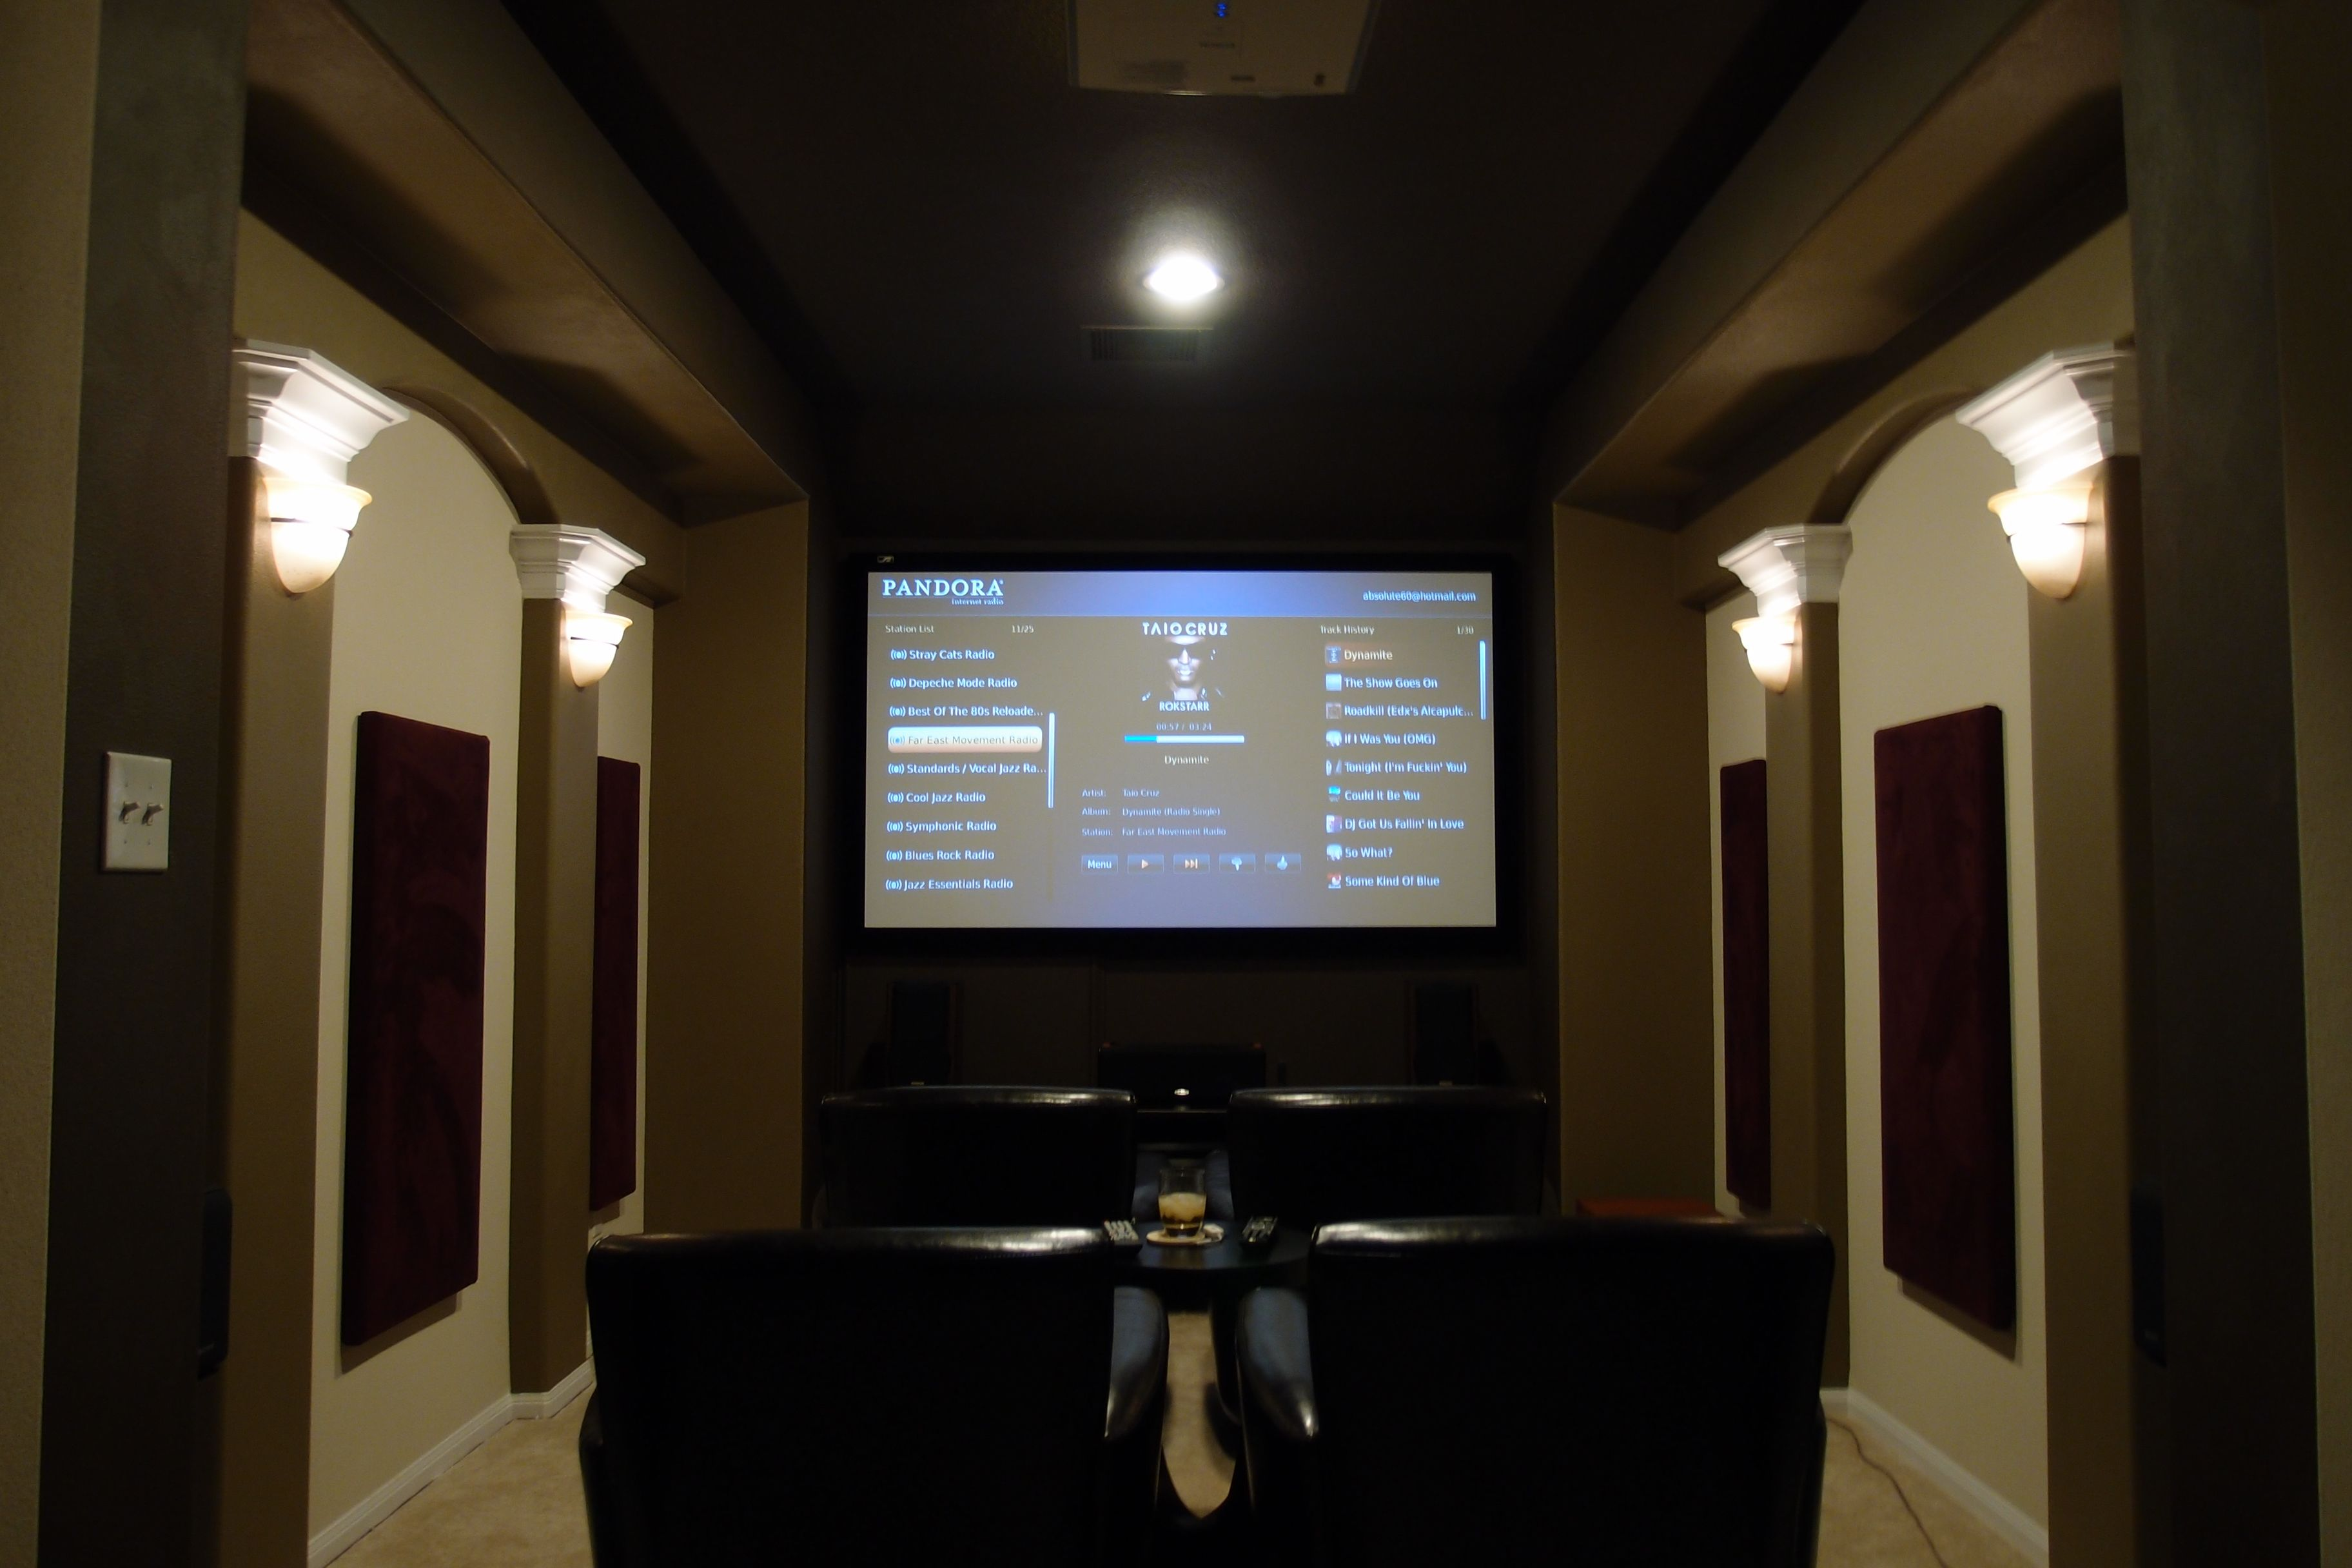 Home Theater Room Size Calculator